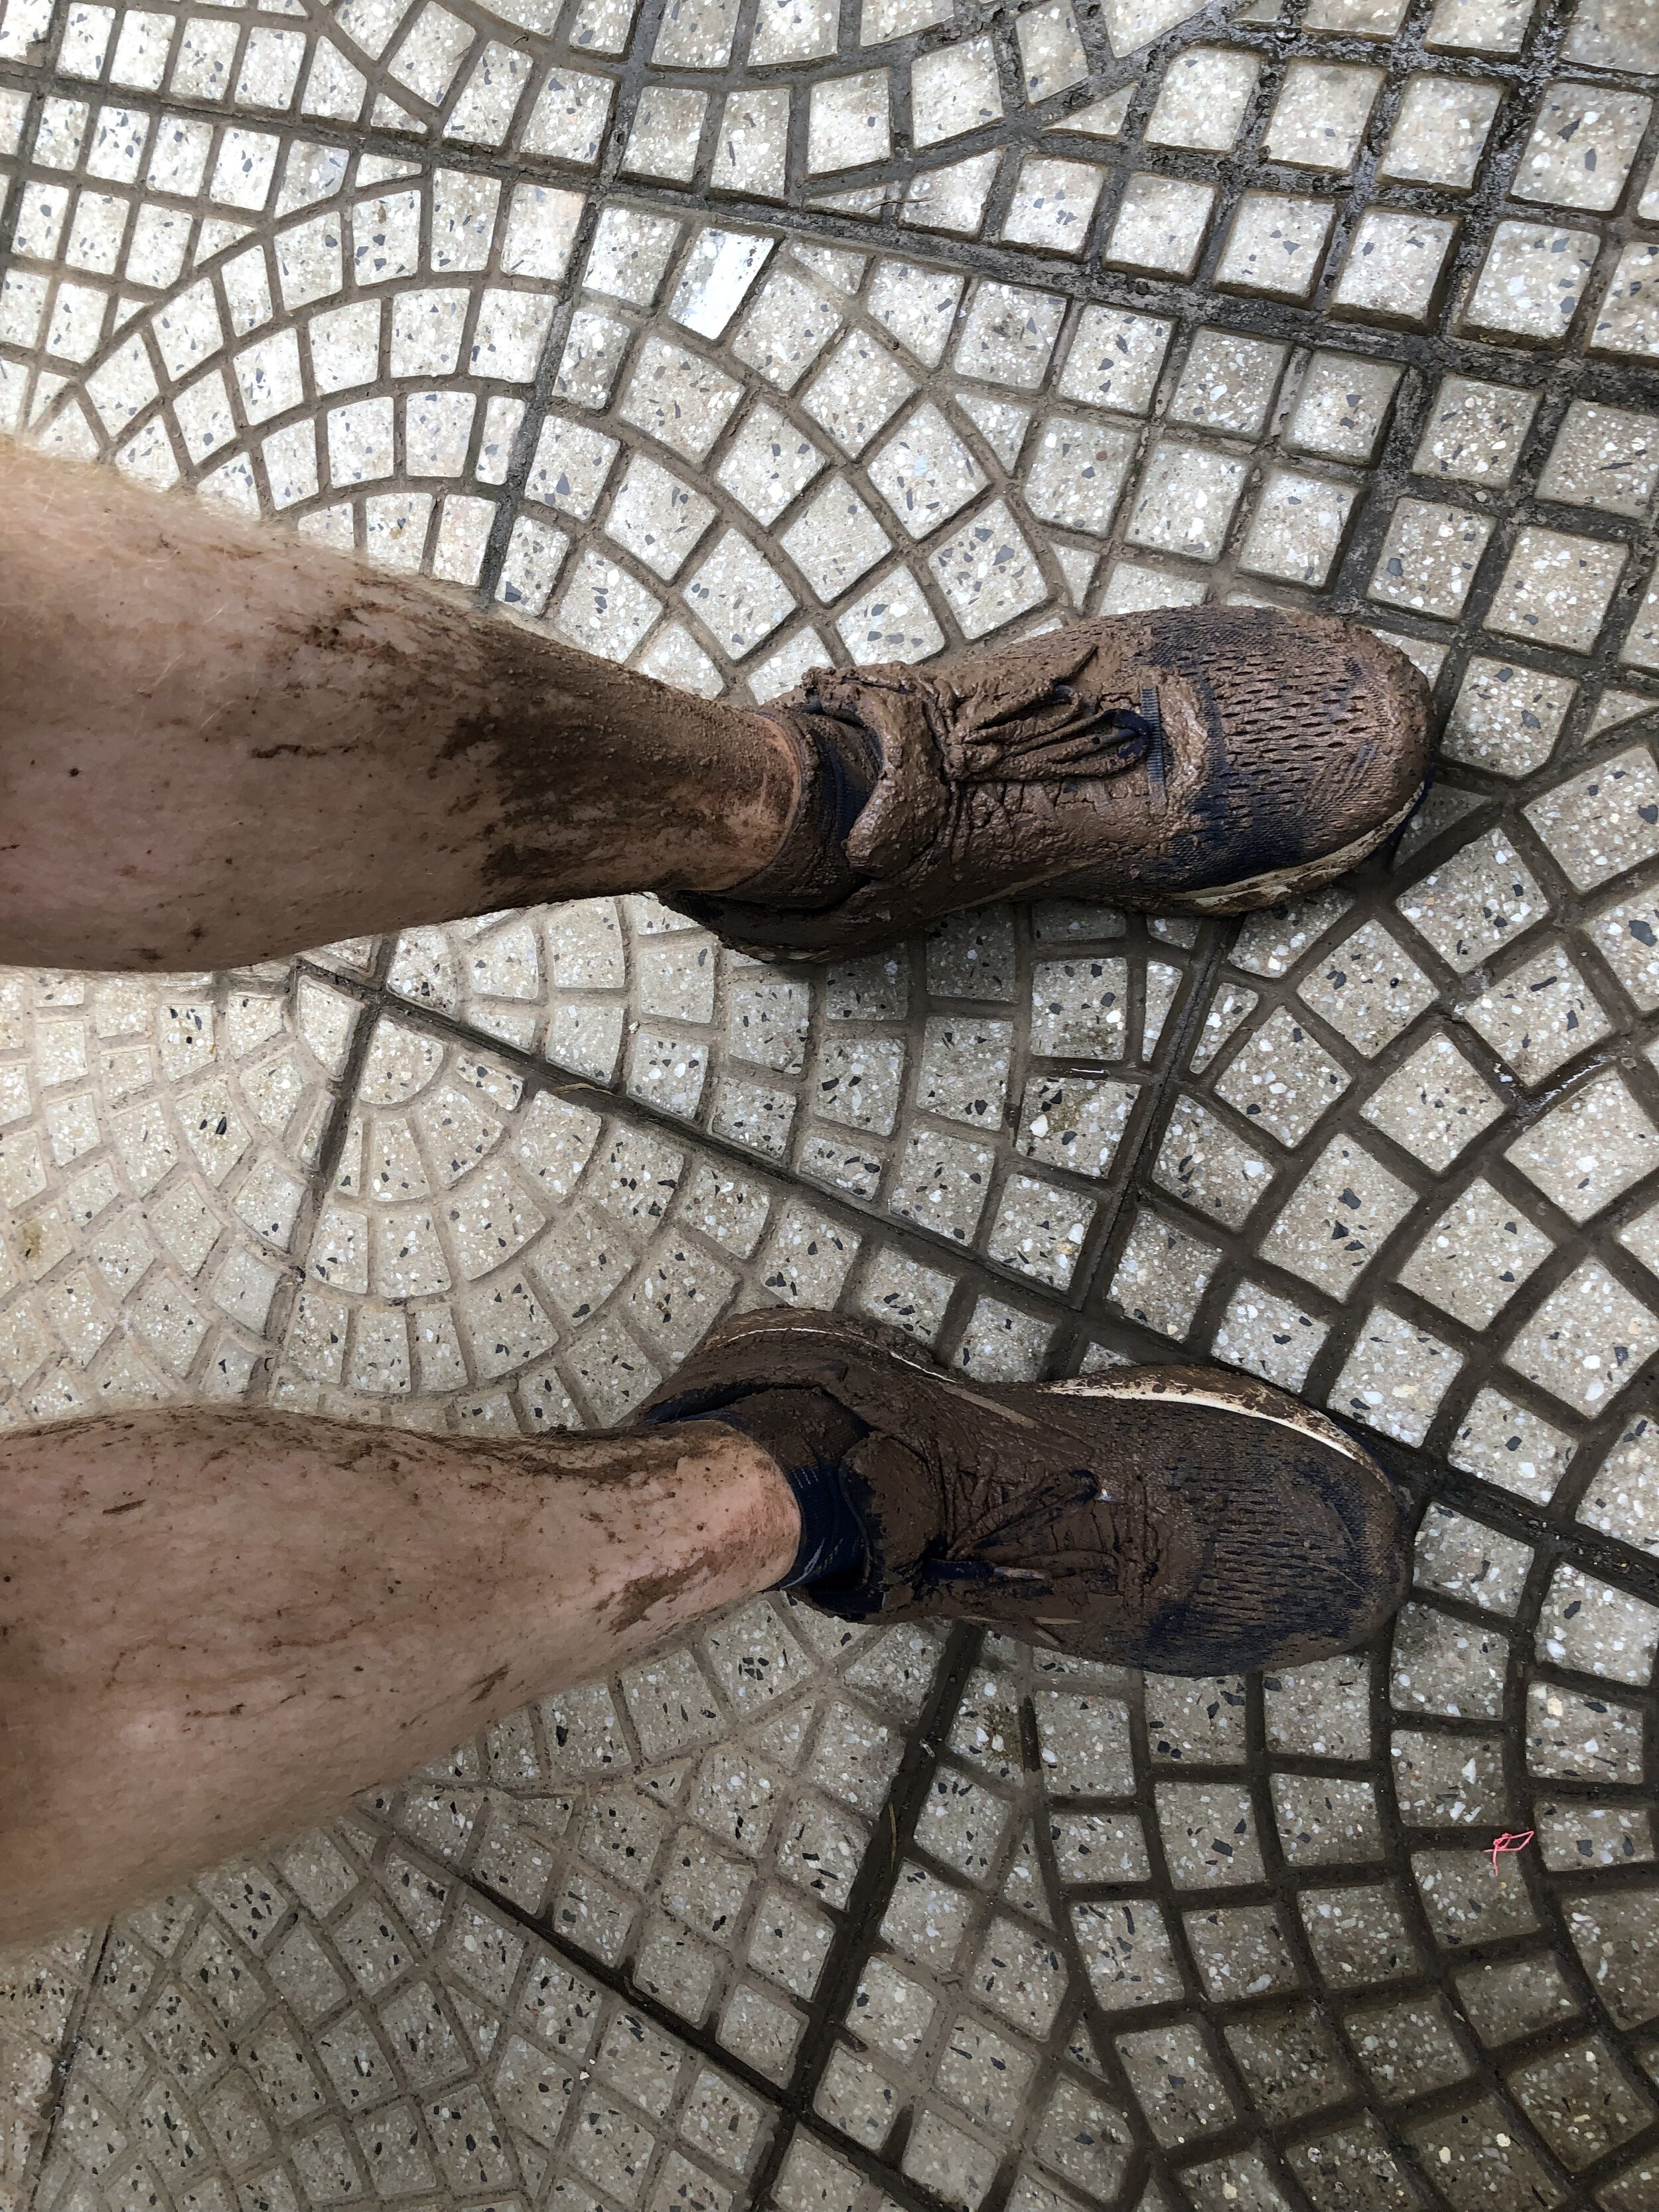 I found a few good puddles on the streets near home to lessen the burden.